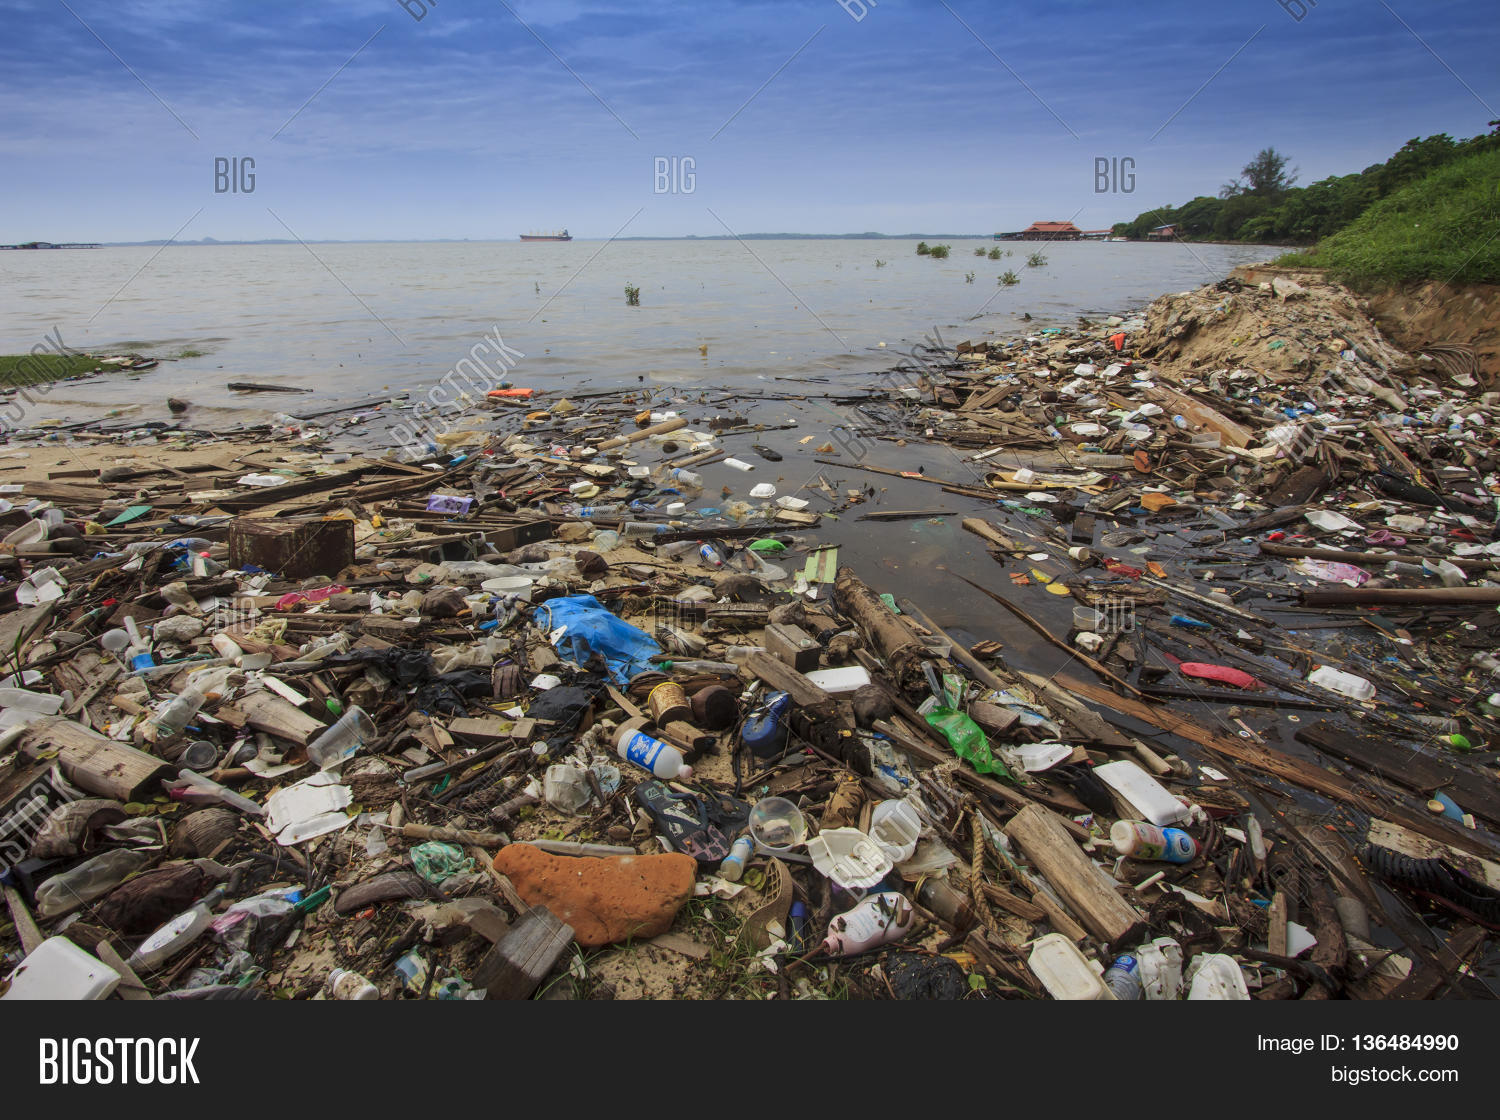 water pollution in malaysia Malaysia - environment discharge of untreated sewage has contaminated the nation's water malaysia's water pollution problem also extends.